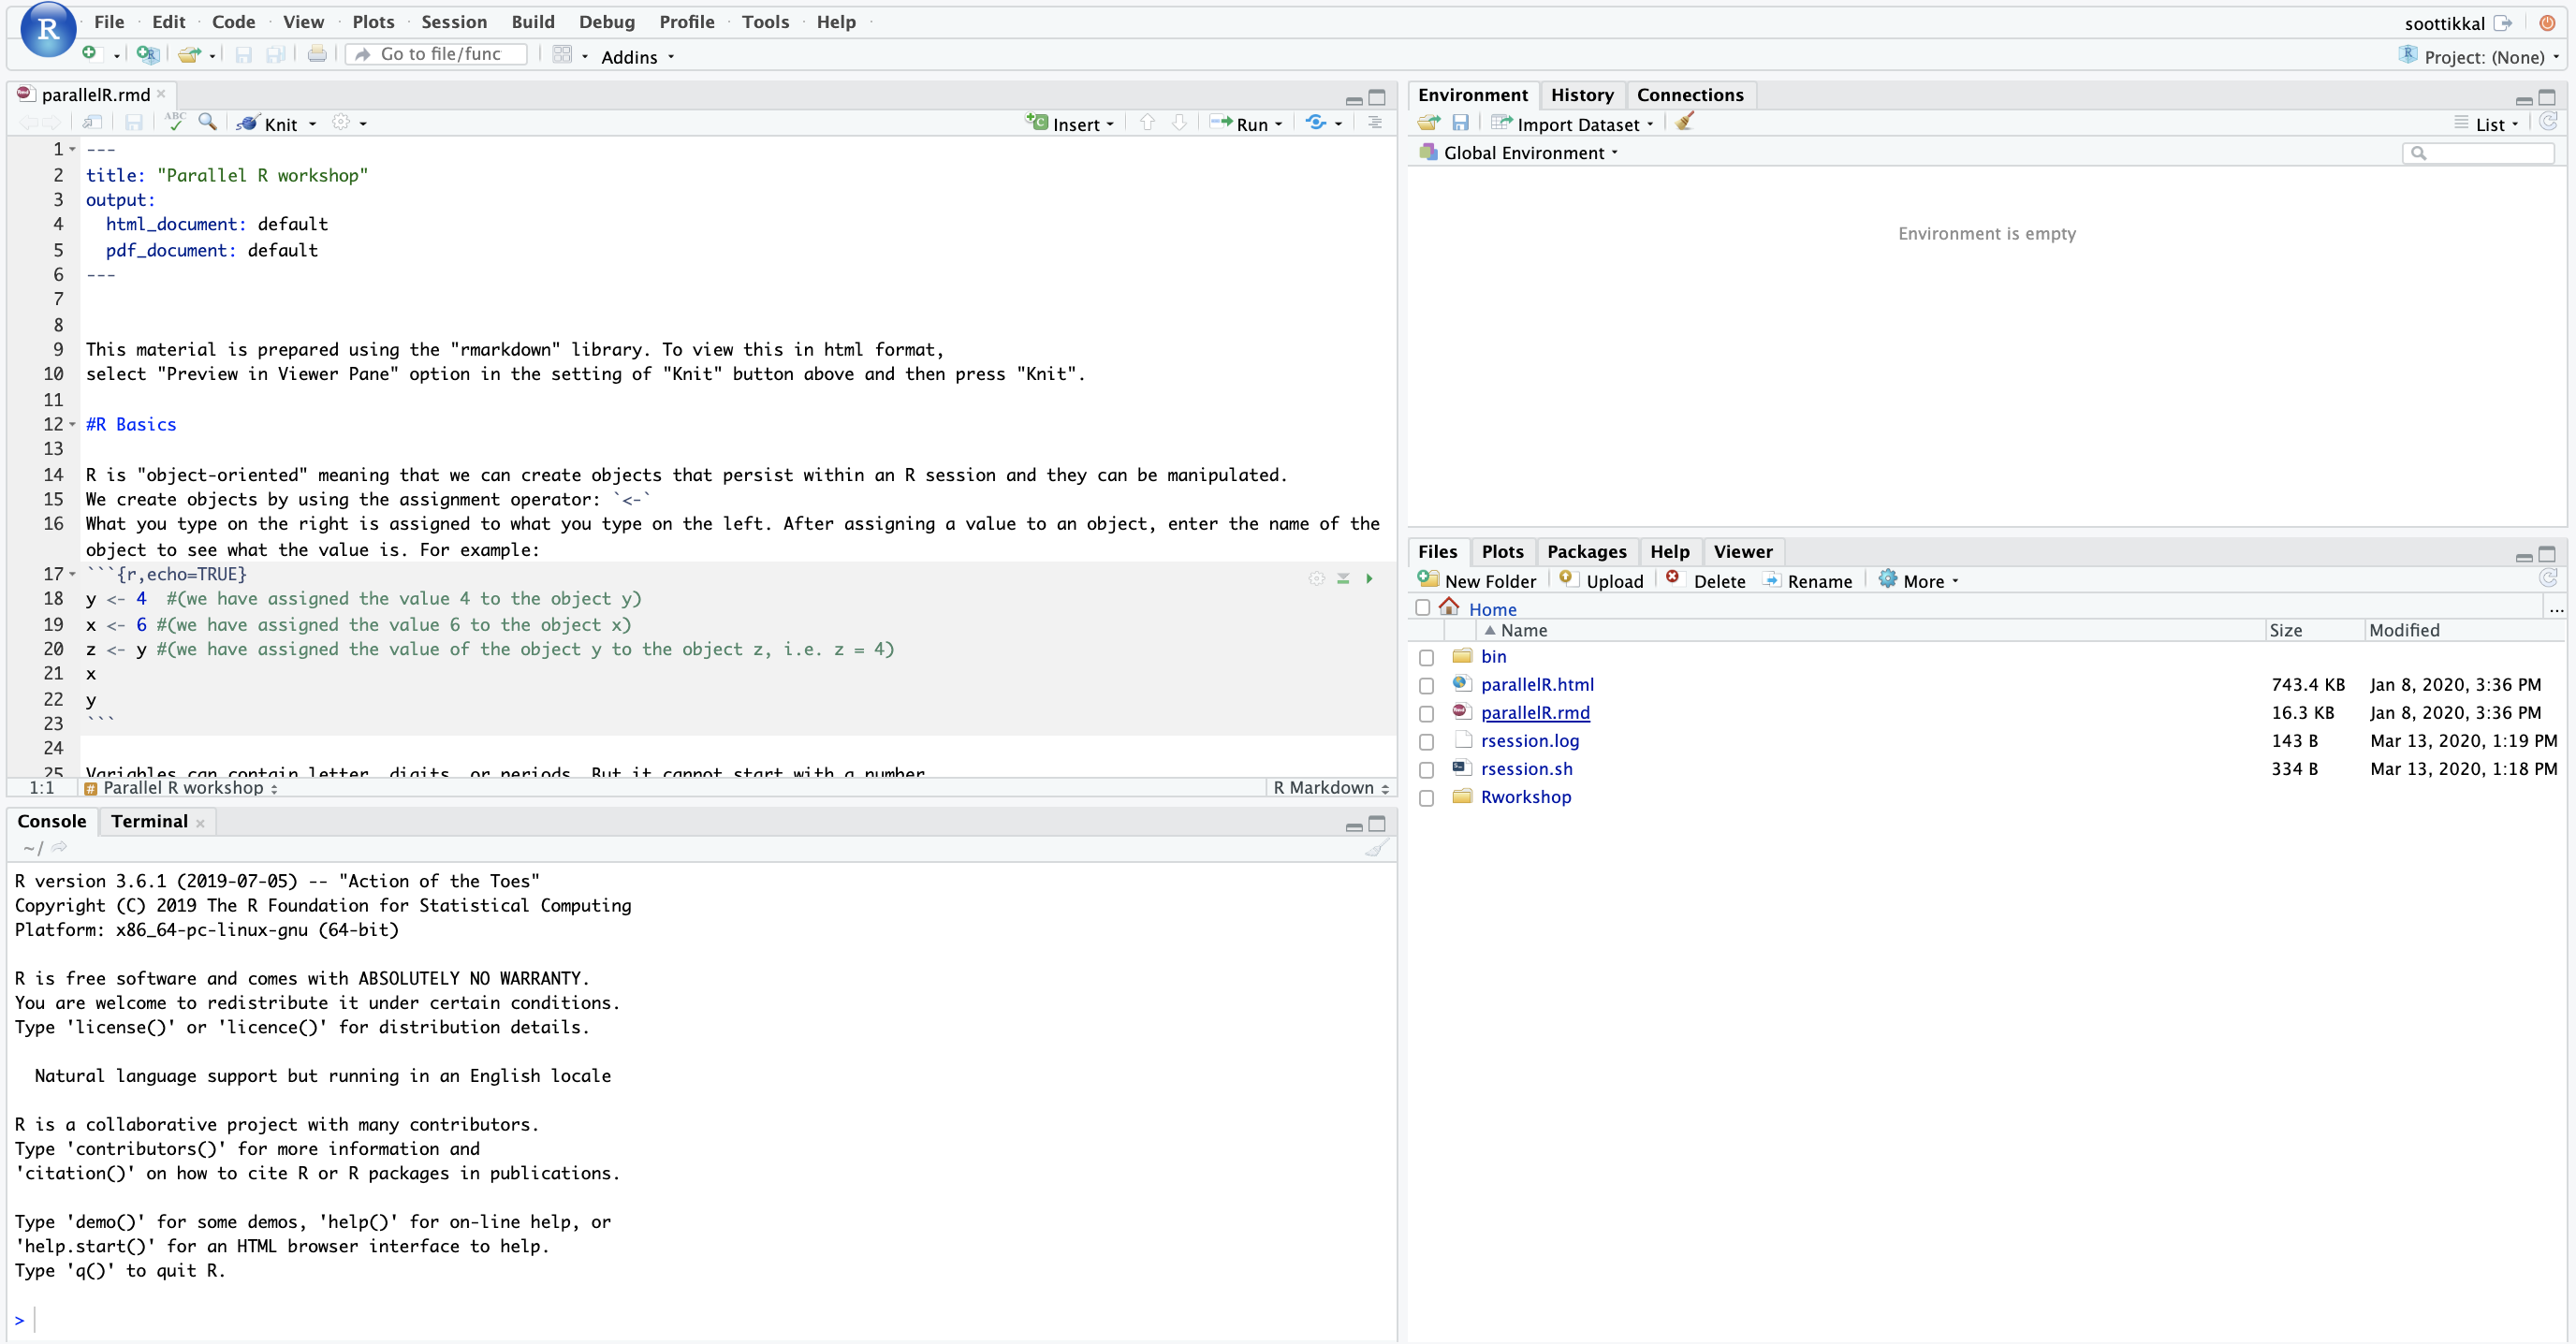 Image of an active RStudio session